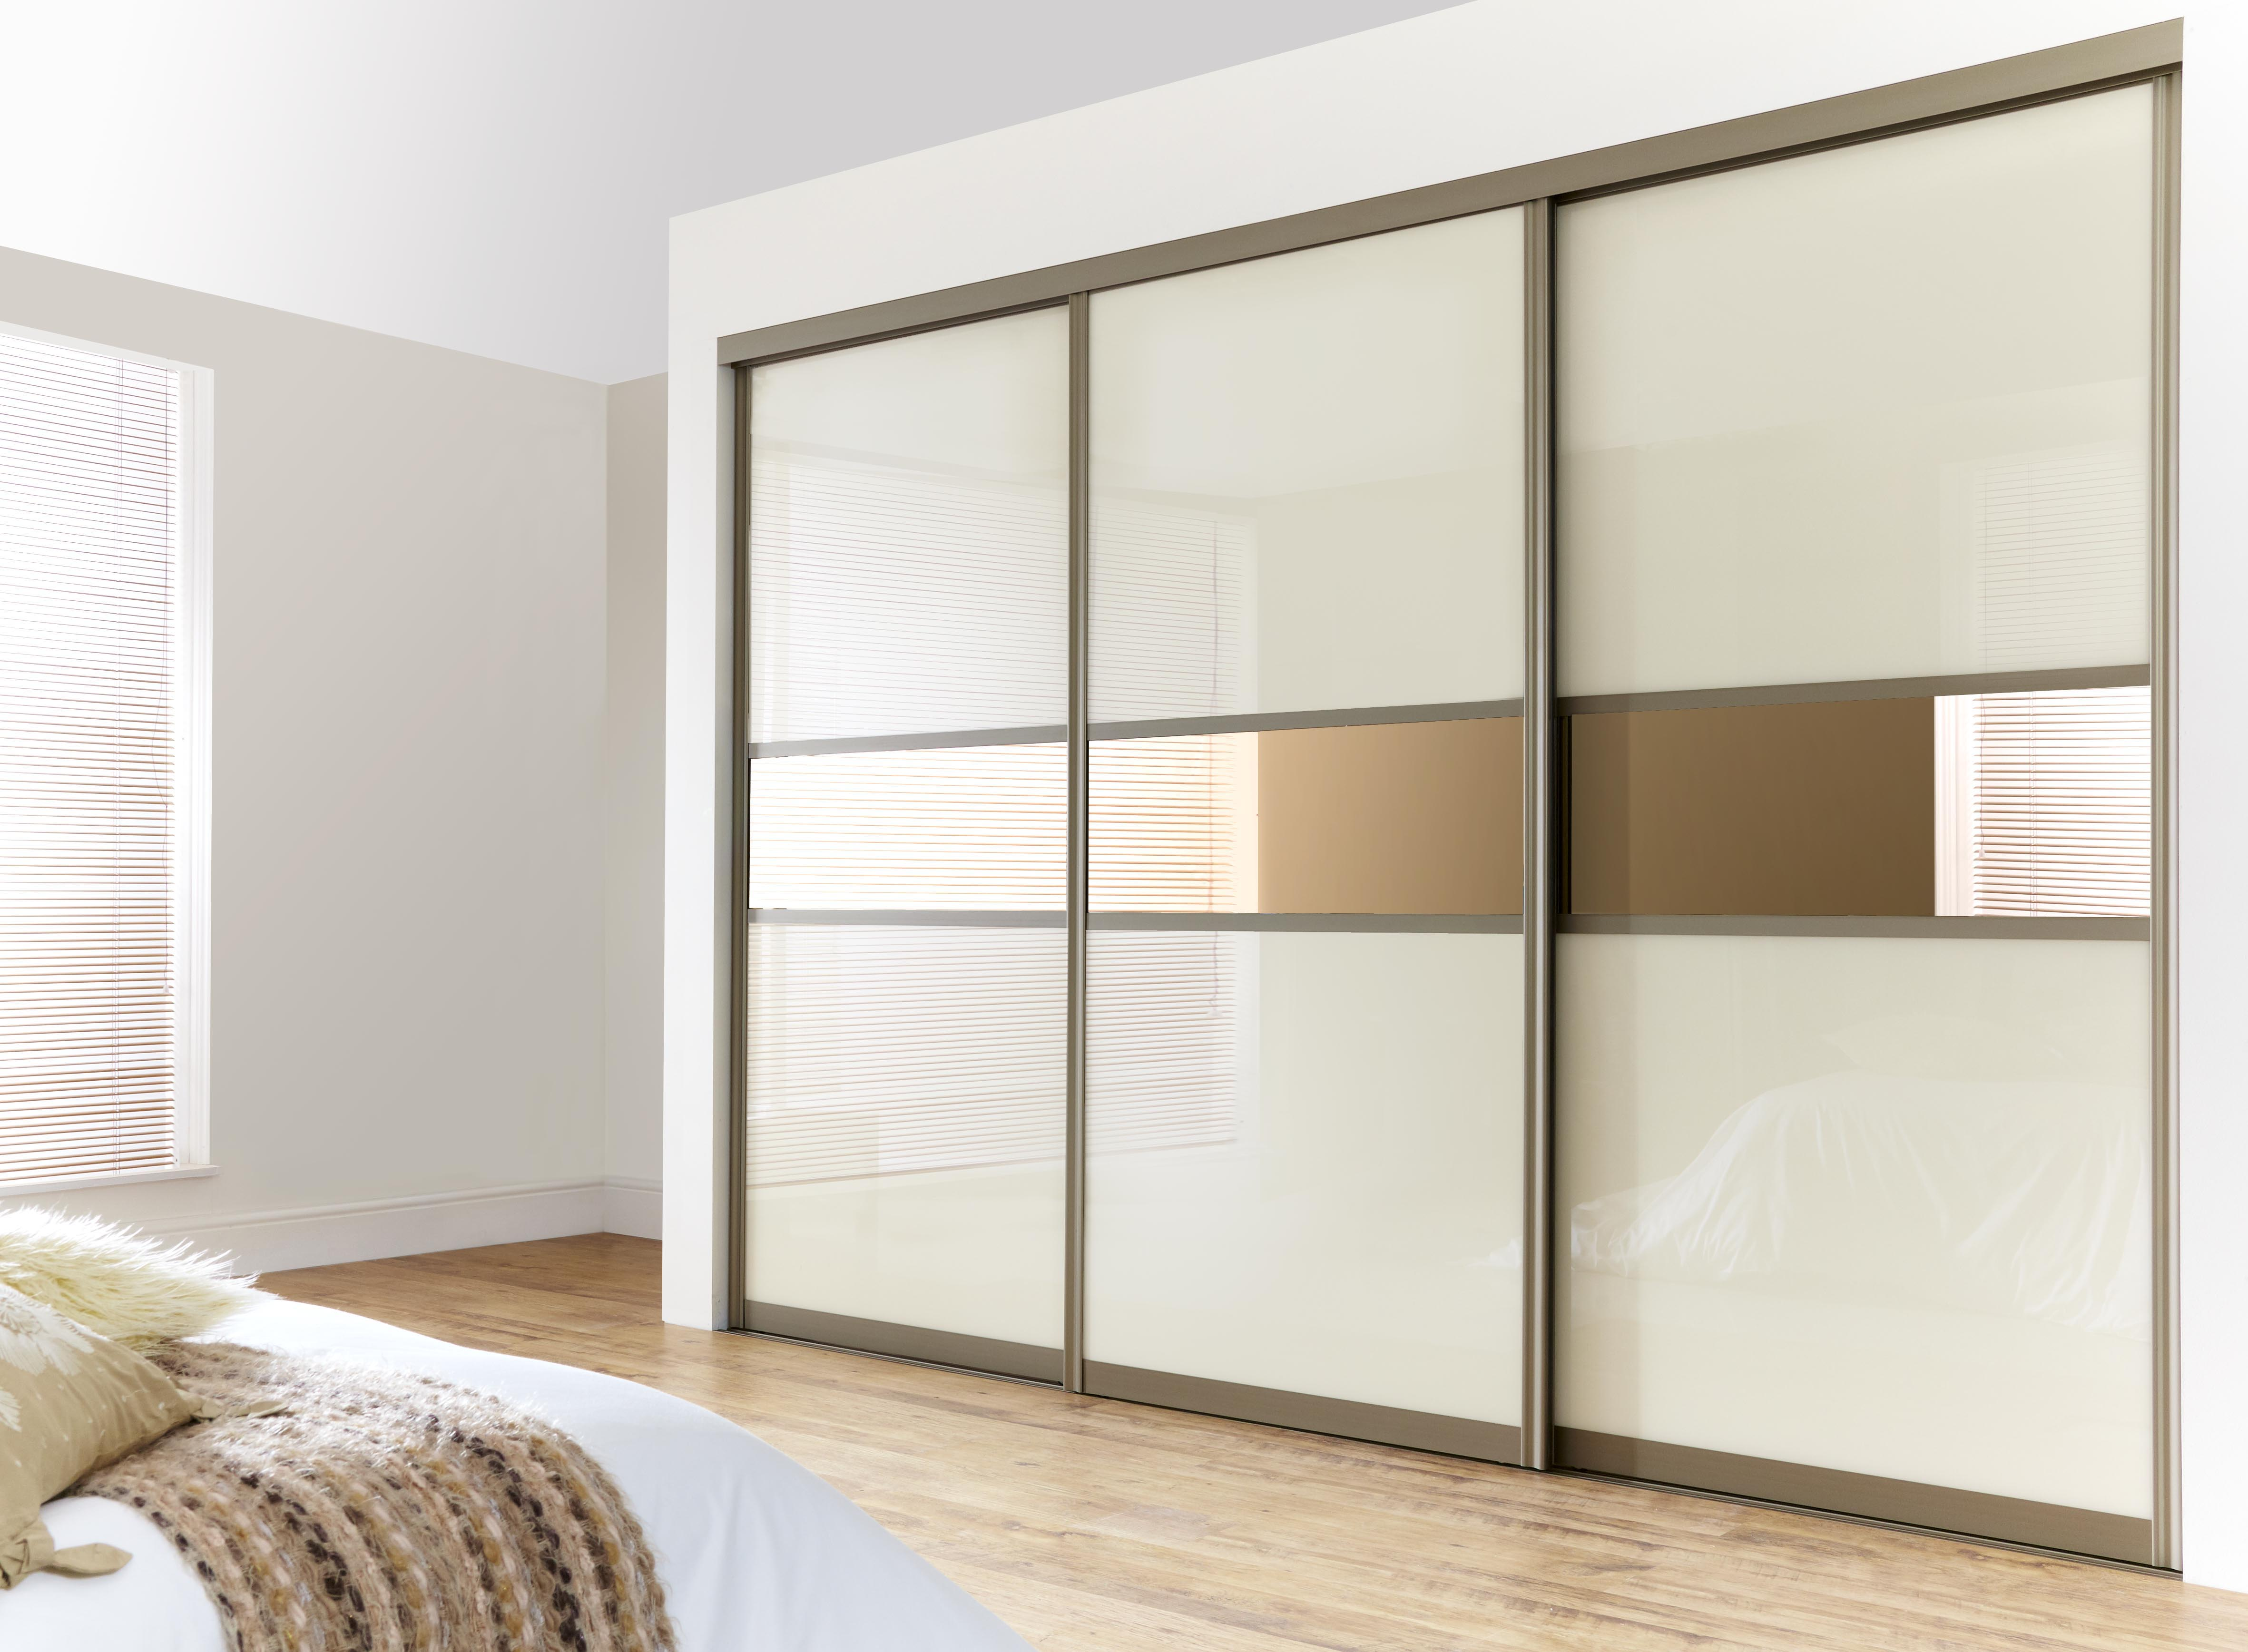 Cozy fitted wardrobes sliding doors view in gallery cool sliding doors for wardrobes fitted design in bedroom pfxgssm